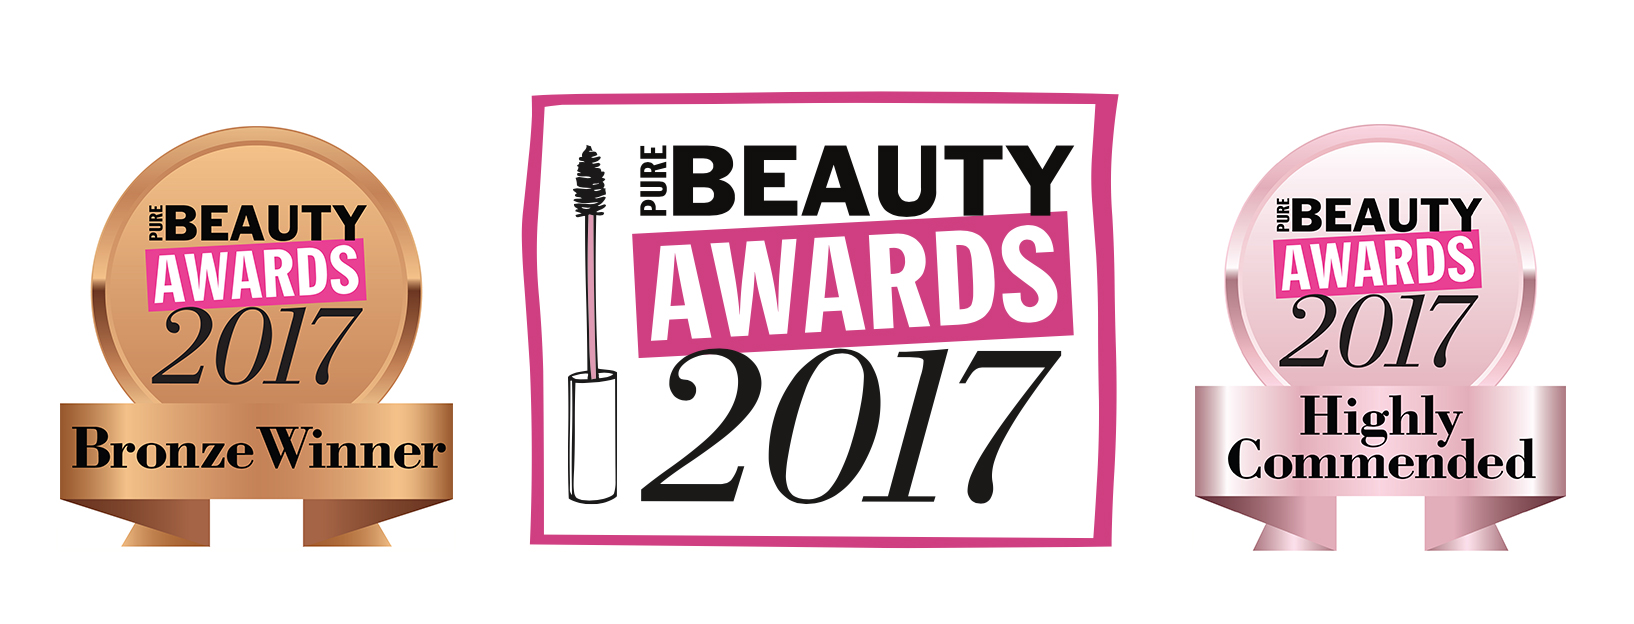 Beauty awards